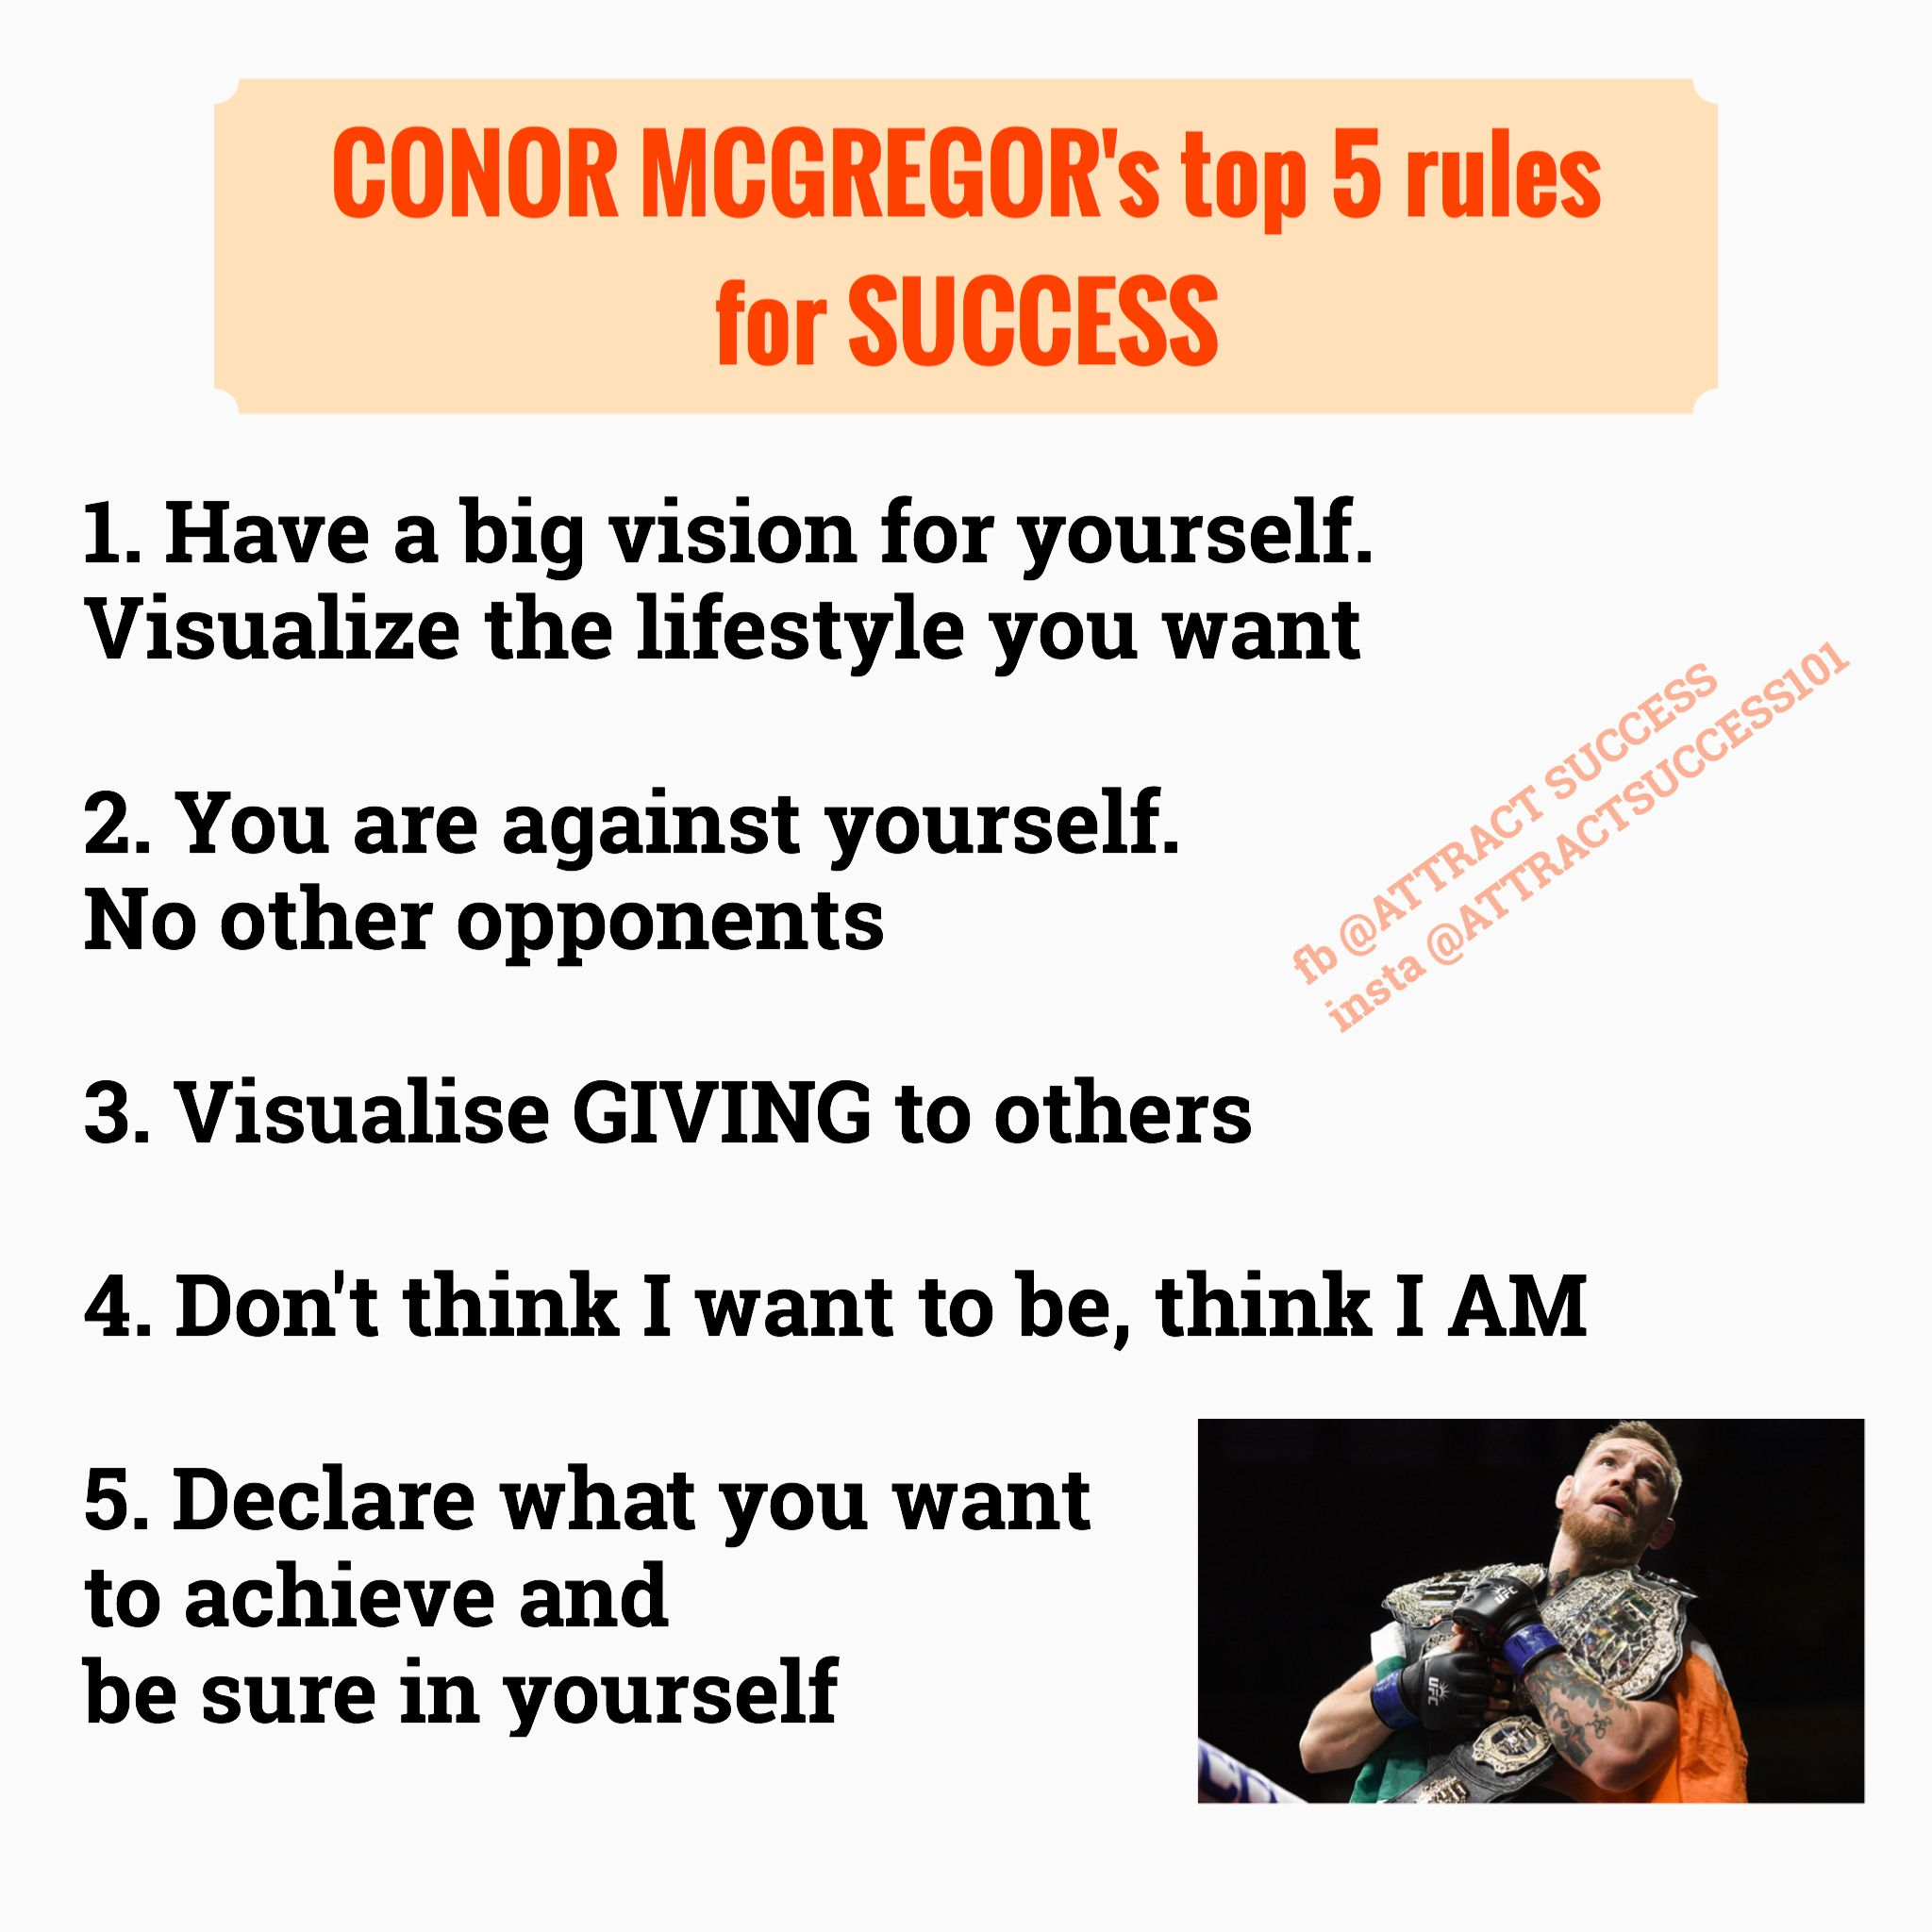 Conor Mcgregor S Top 5 Rules For Success Big Vision It S You Against You Visualize Feel Like You Have It Declare Law Of Attraction Conor Mcgregor Mcgregor